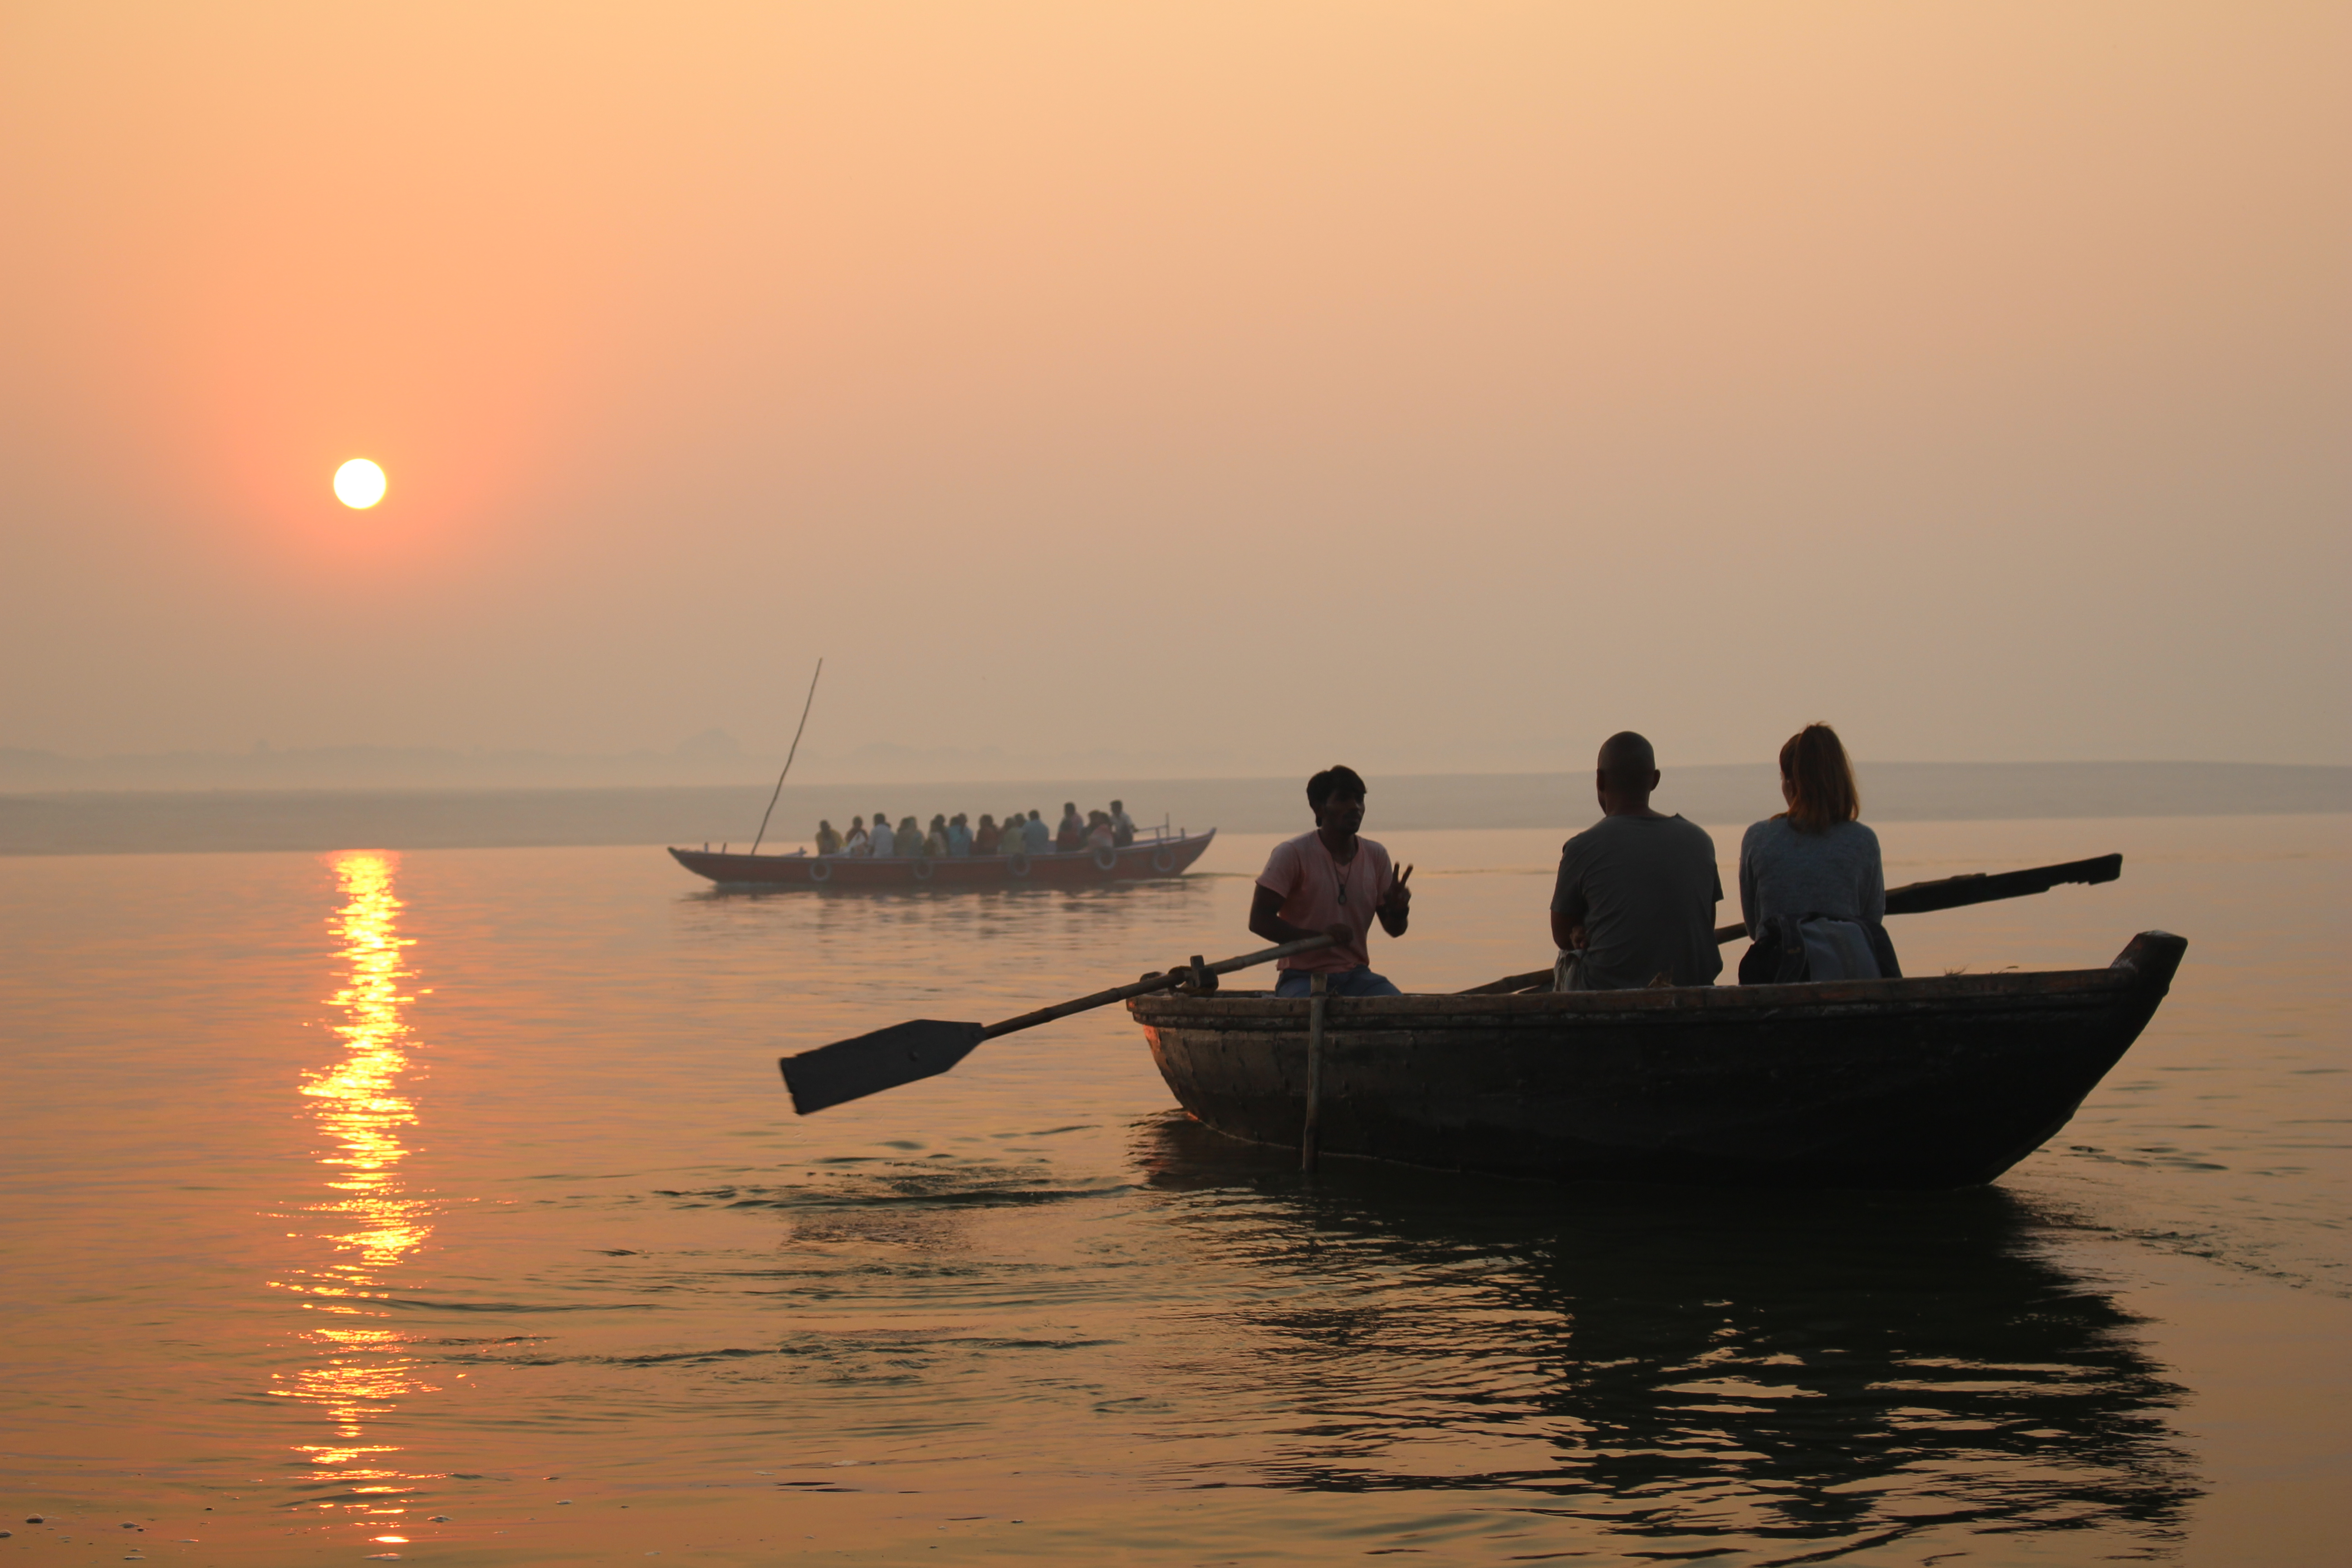 SUNRISE OVER THE GANGES by June Cryer